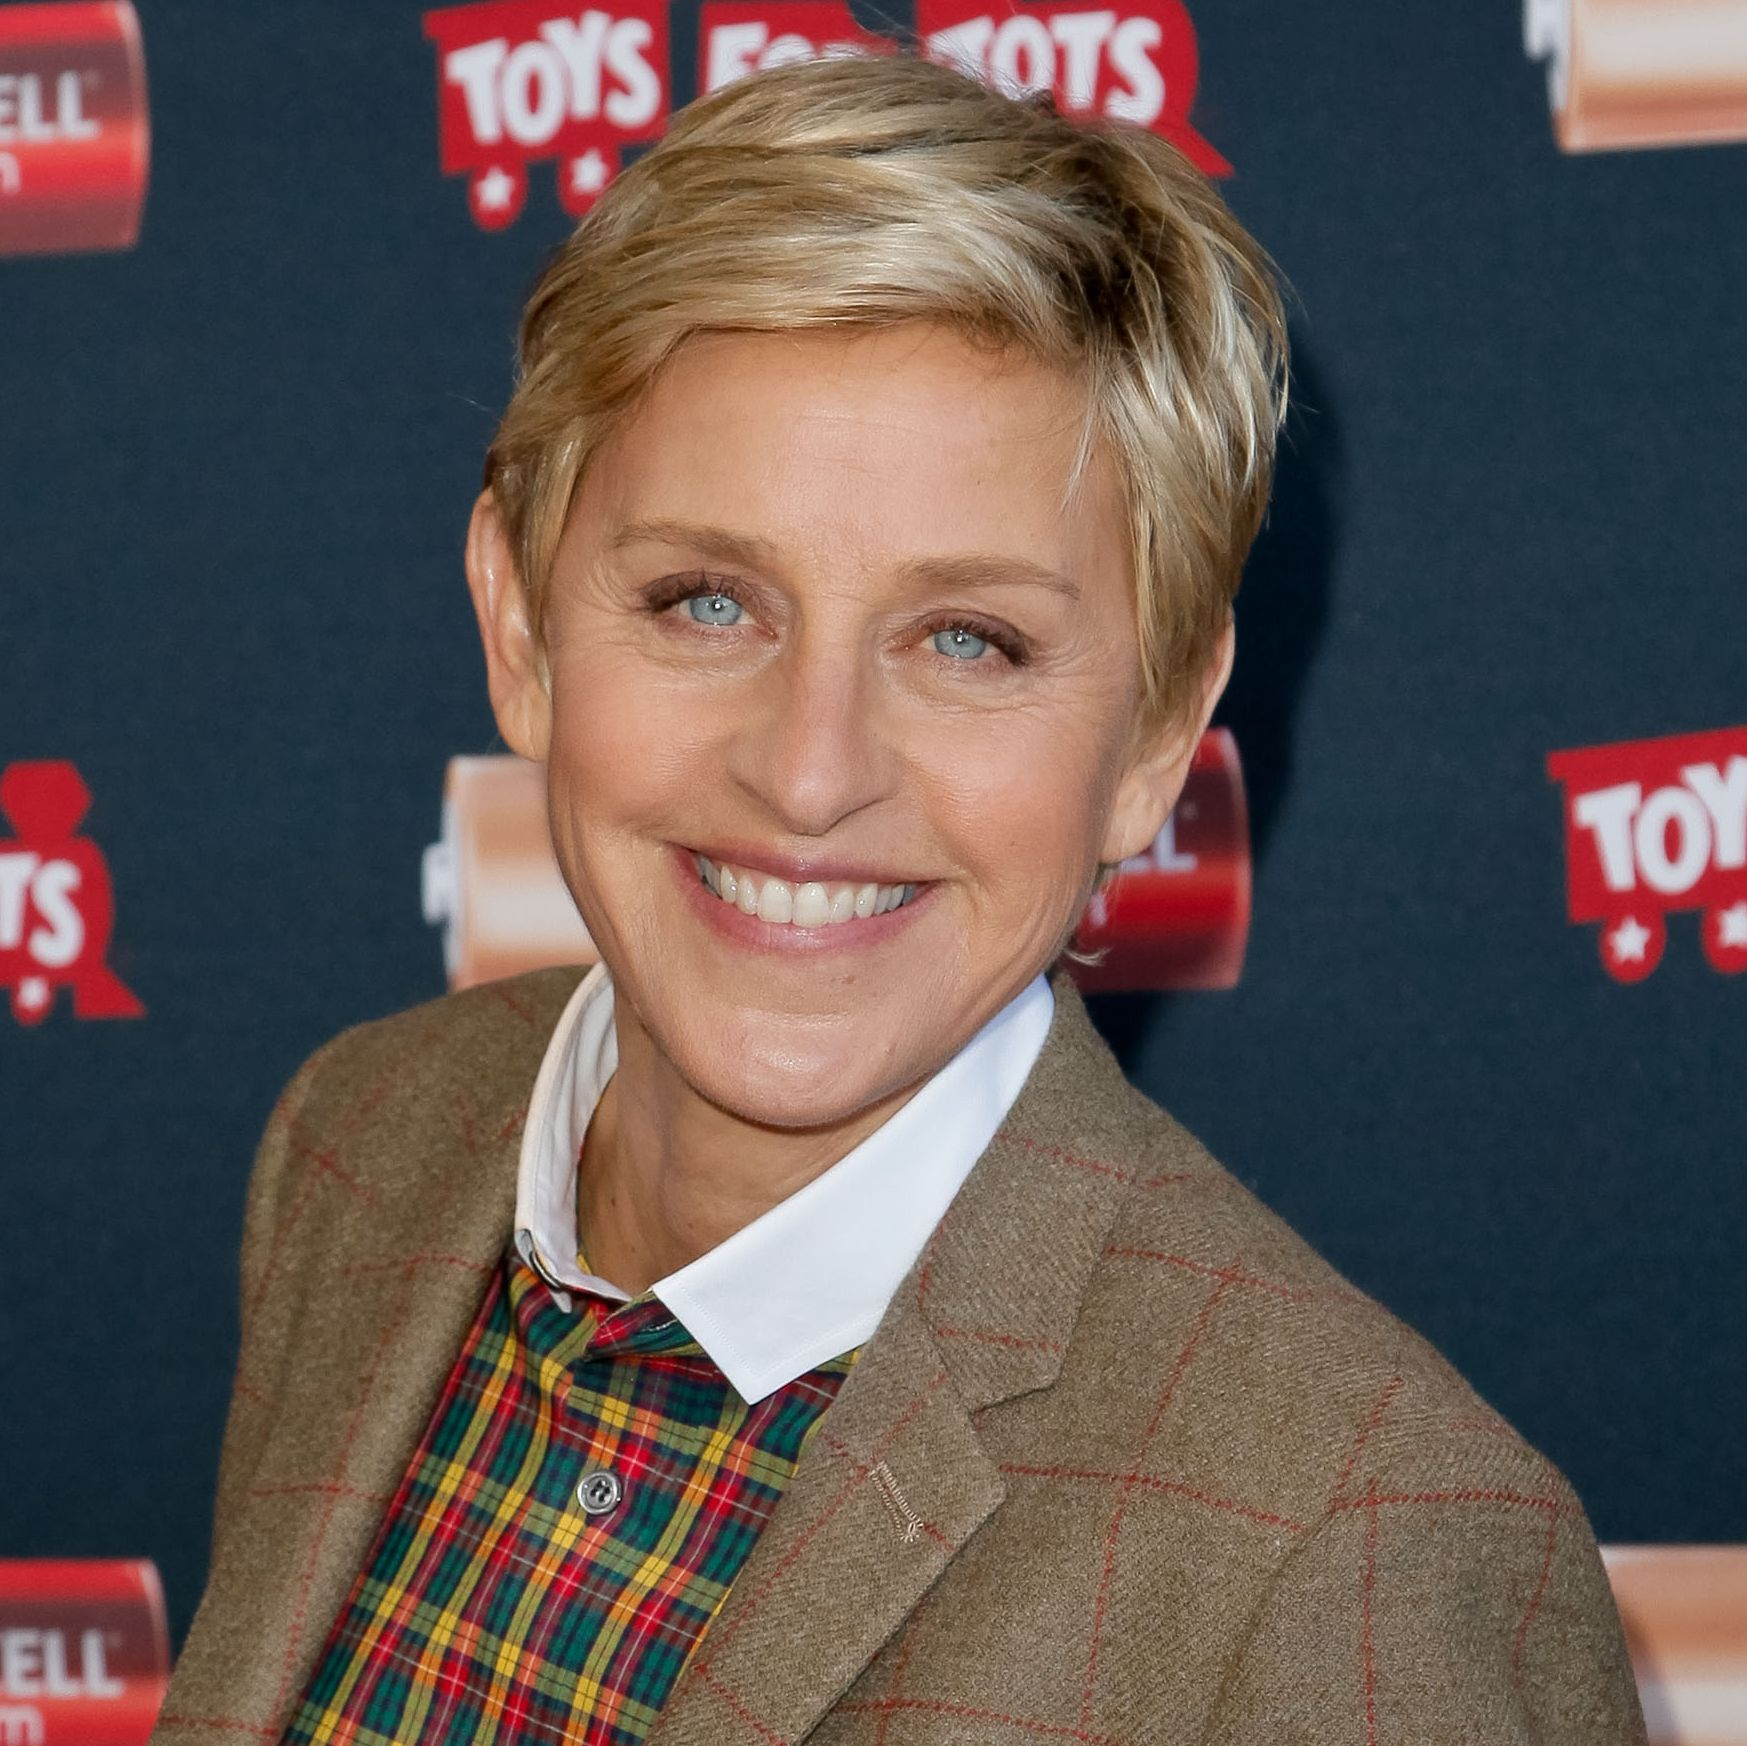 """""""Depression eats away at your confidence"""" """"Depression eats away at your confidence, and you get lost in that, and forget that you're enough just as you are,"""" Ellen DeGeneres told USA Today in December 2018 of coming out as a lesbian in the 90s and experiencing media backlash."""